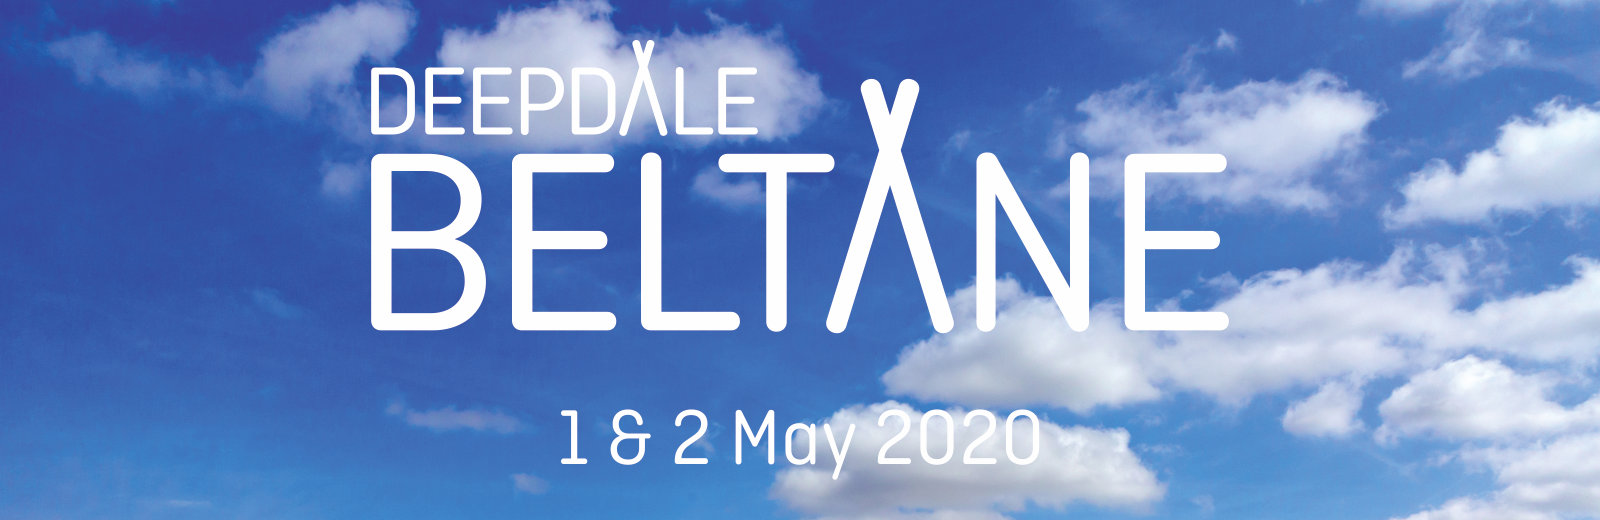 Deepdale Beltane | 1st & 2nd May 2020 | Bringing in the Summer - Live Music, Real Ales & Street Food